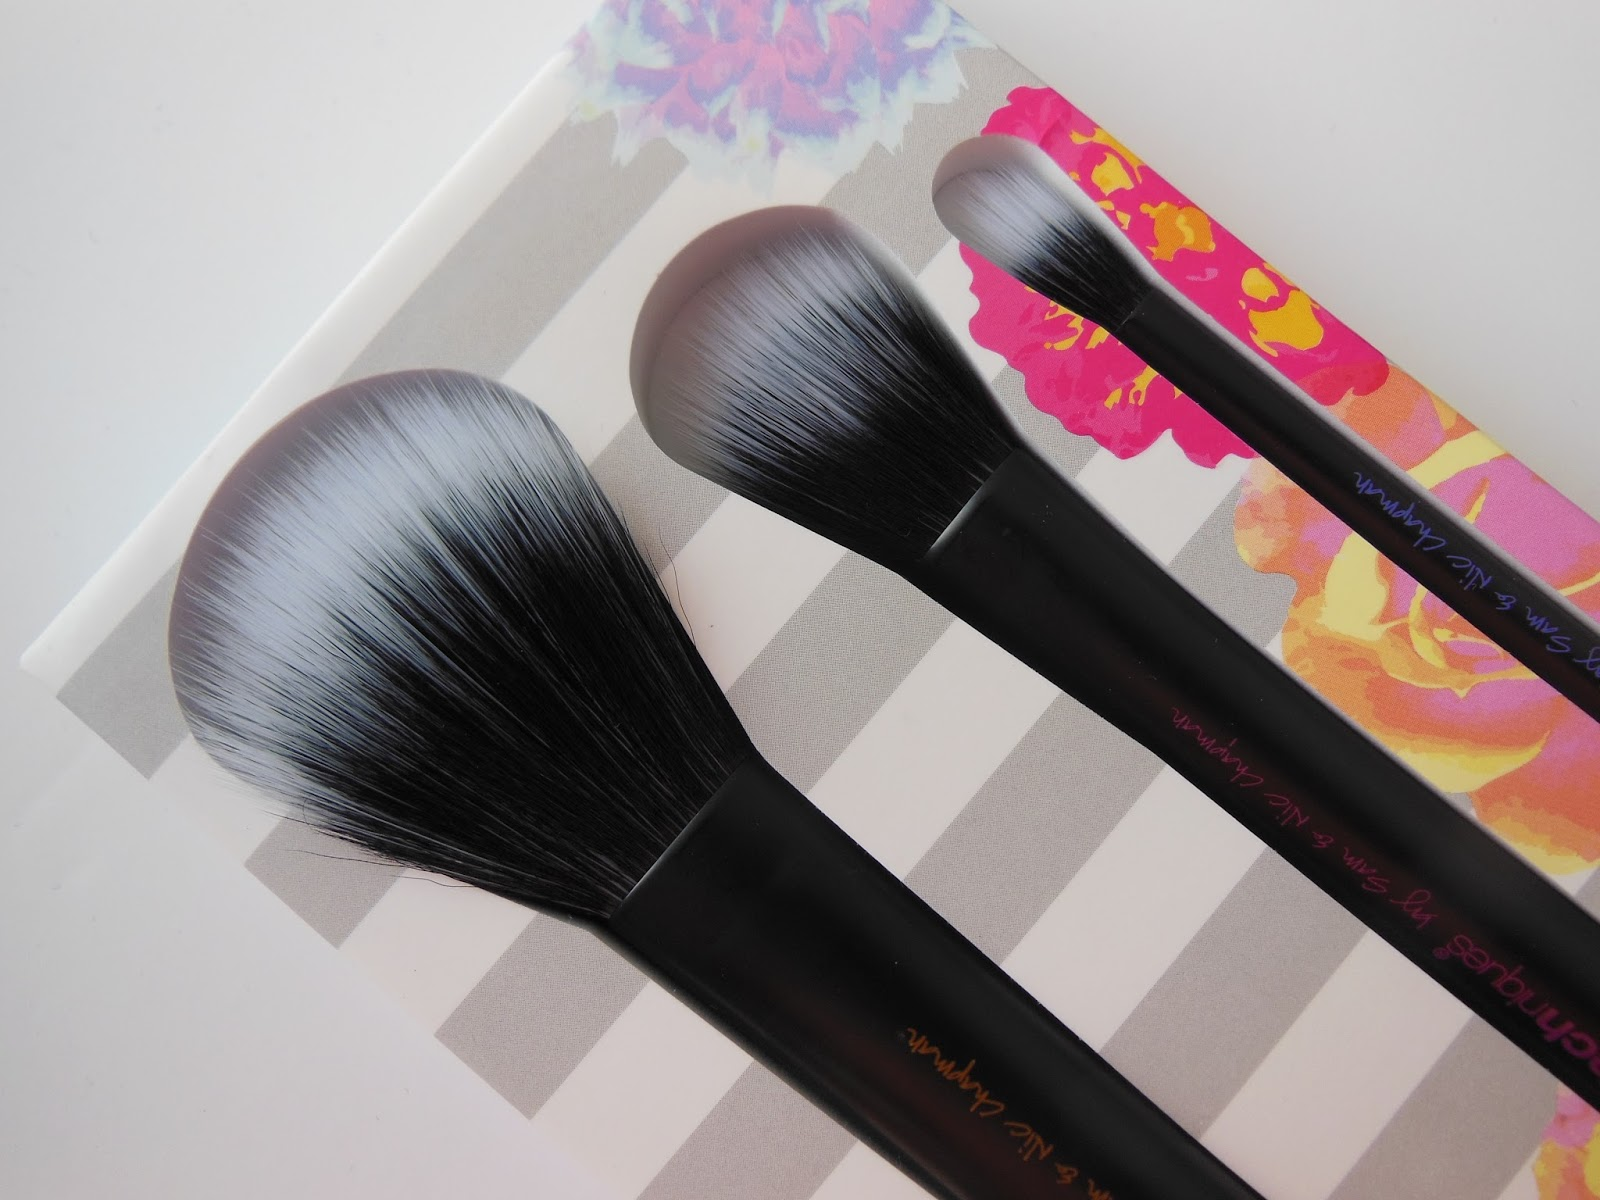 Real Techniques limited edition duo fibre brush set close up